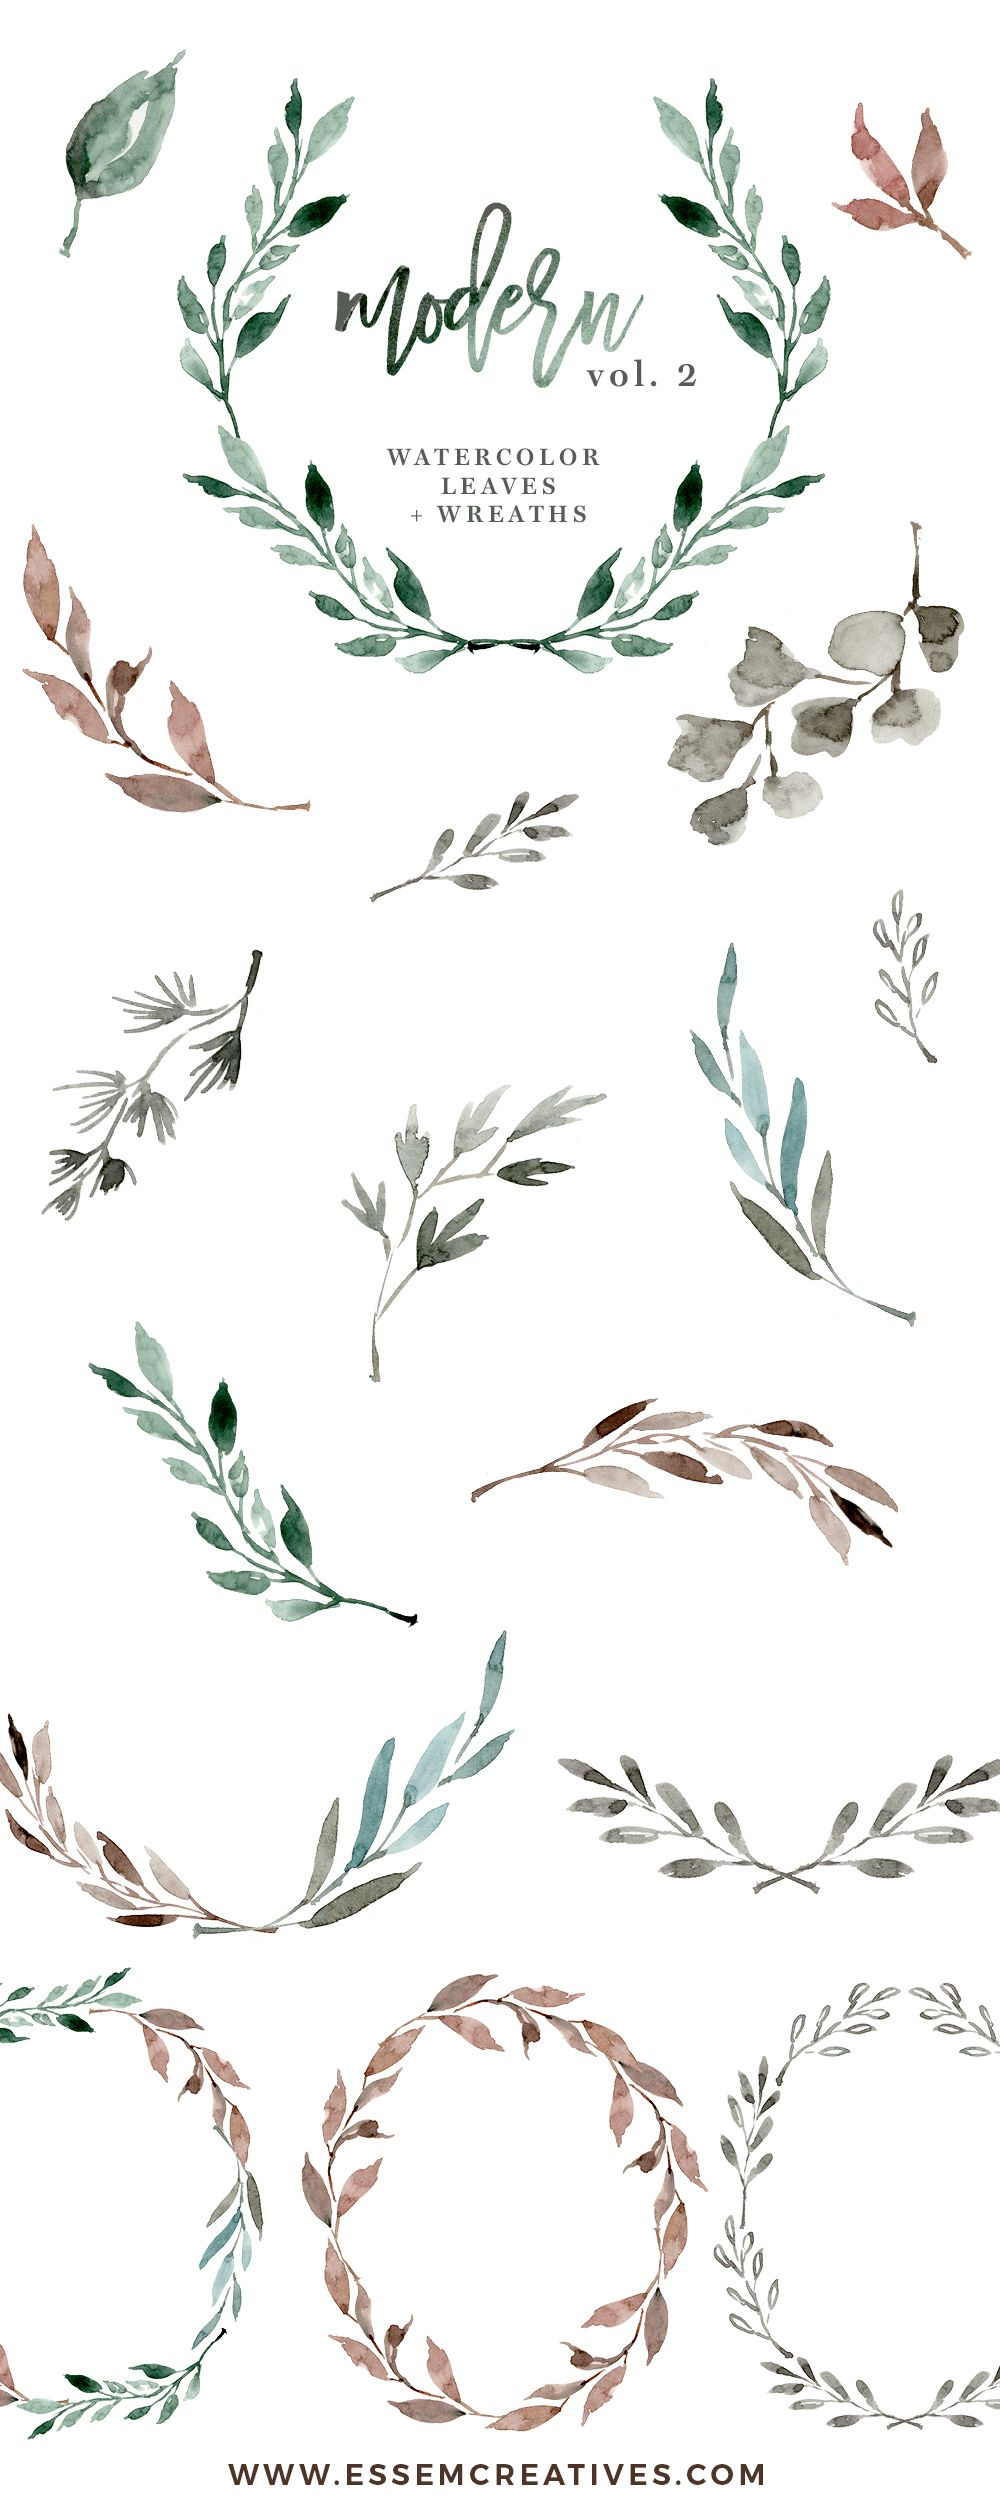 Winter greeny branches clipart png free Watercolour Leaves Wreaths Clipart, Greenery Wedding Clipart ... png free